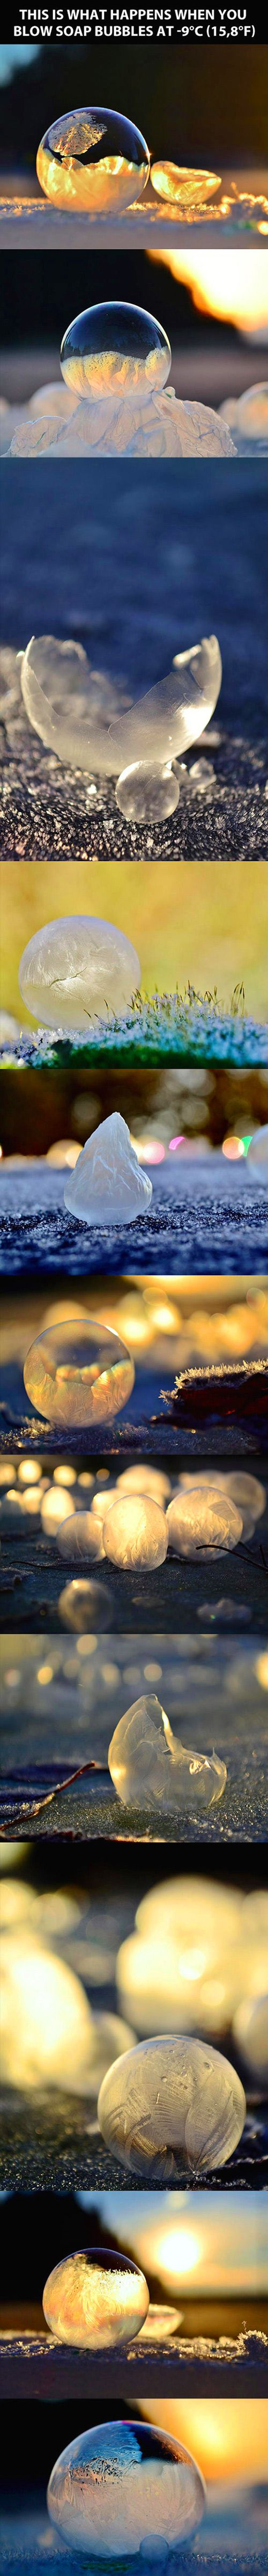 Blowing frozen bubbles.